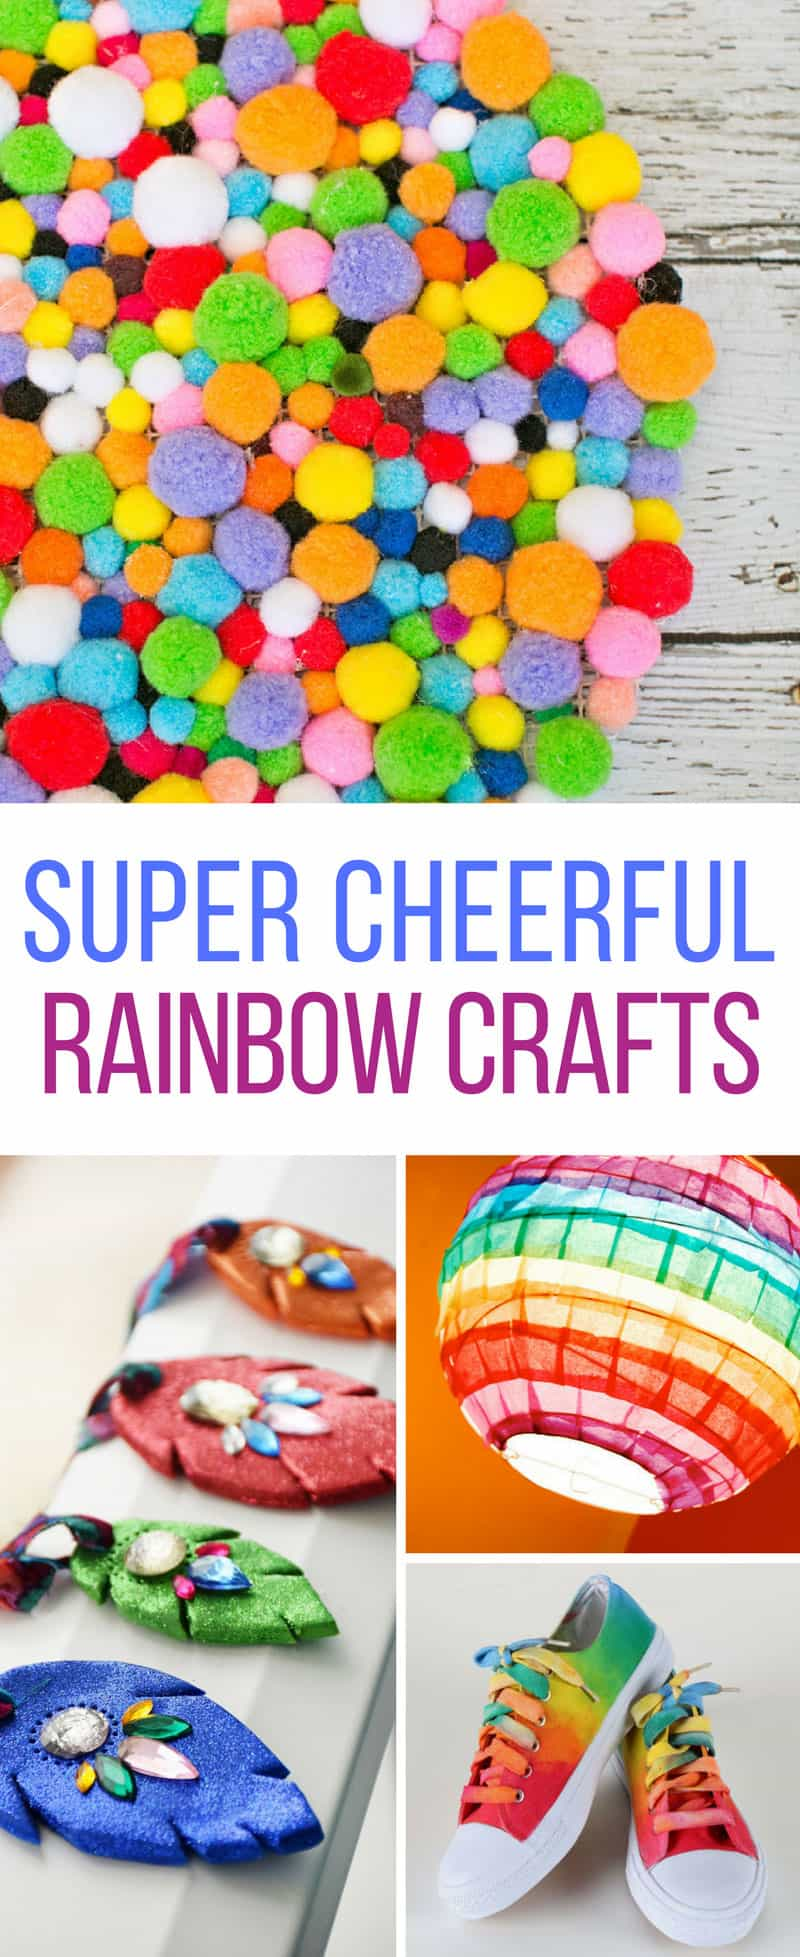 So many fabulous DIY rainbow crafts! Thanks for sharing!